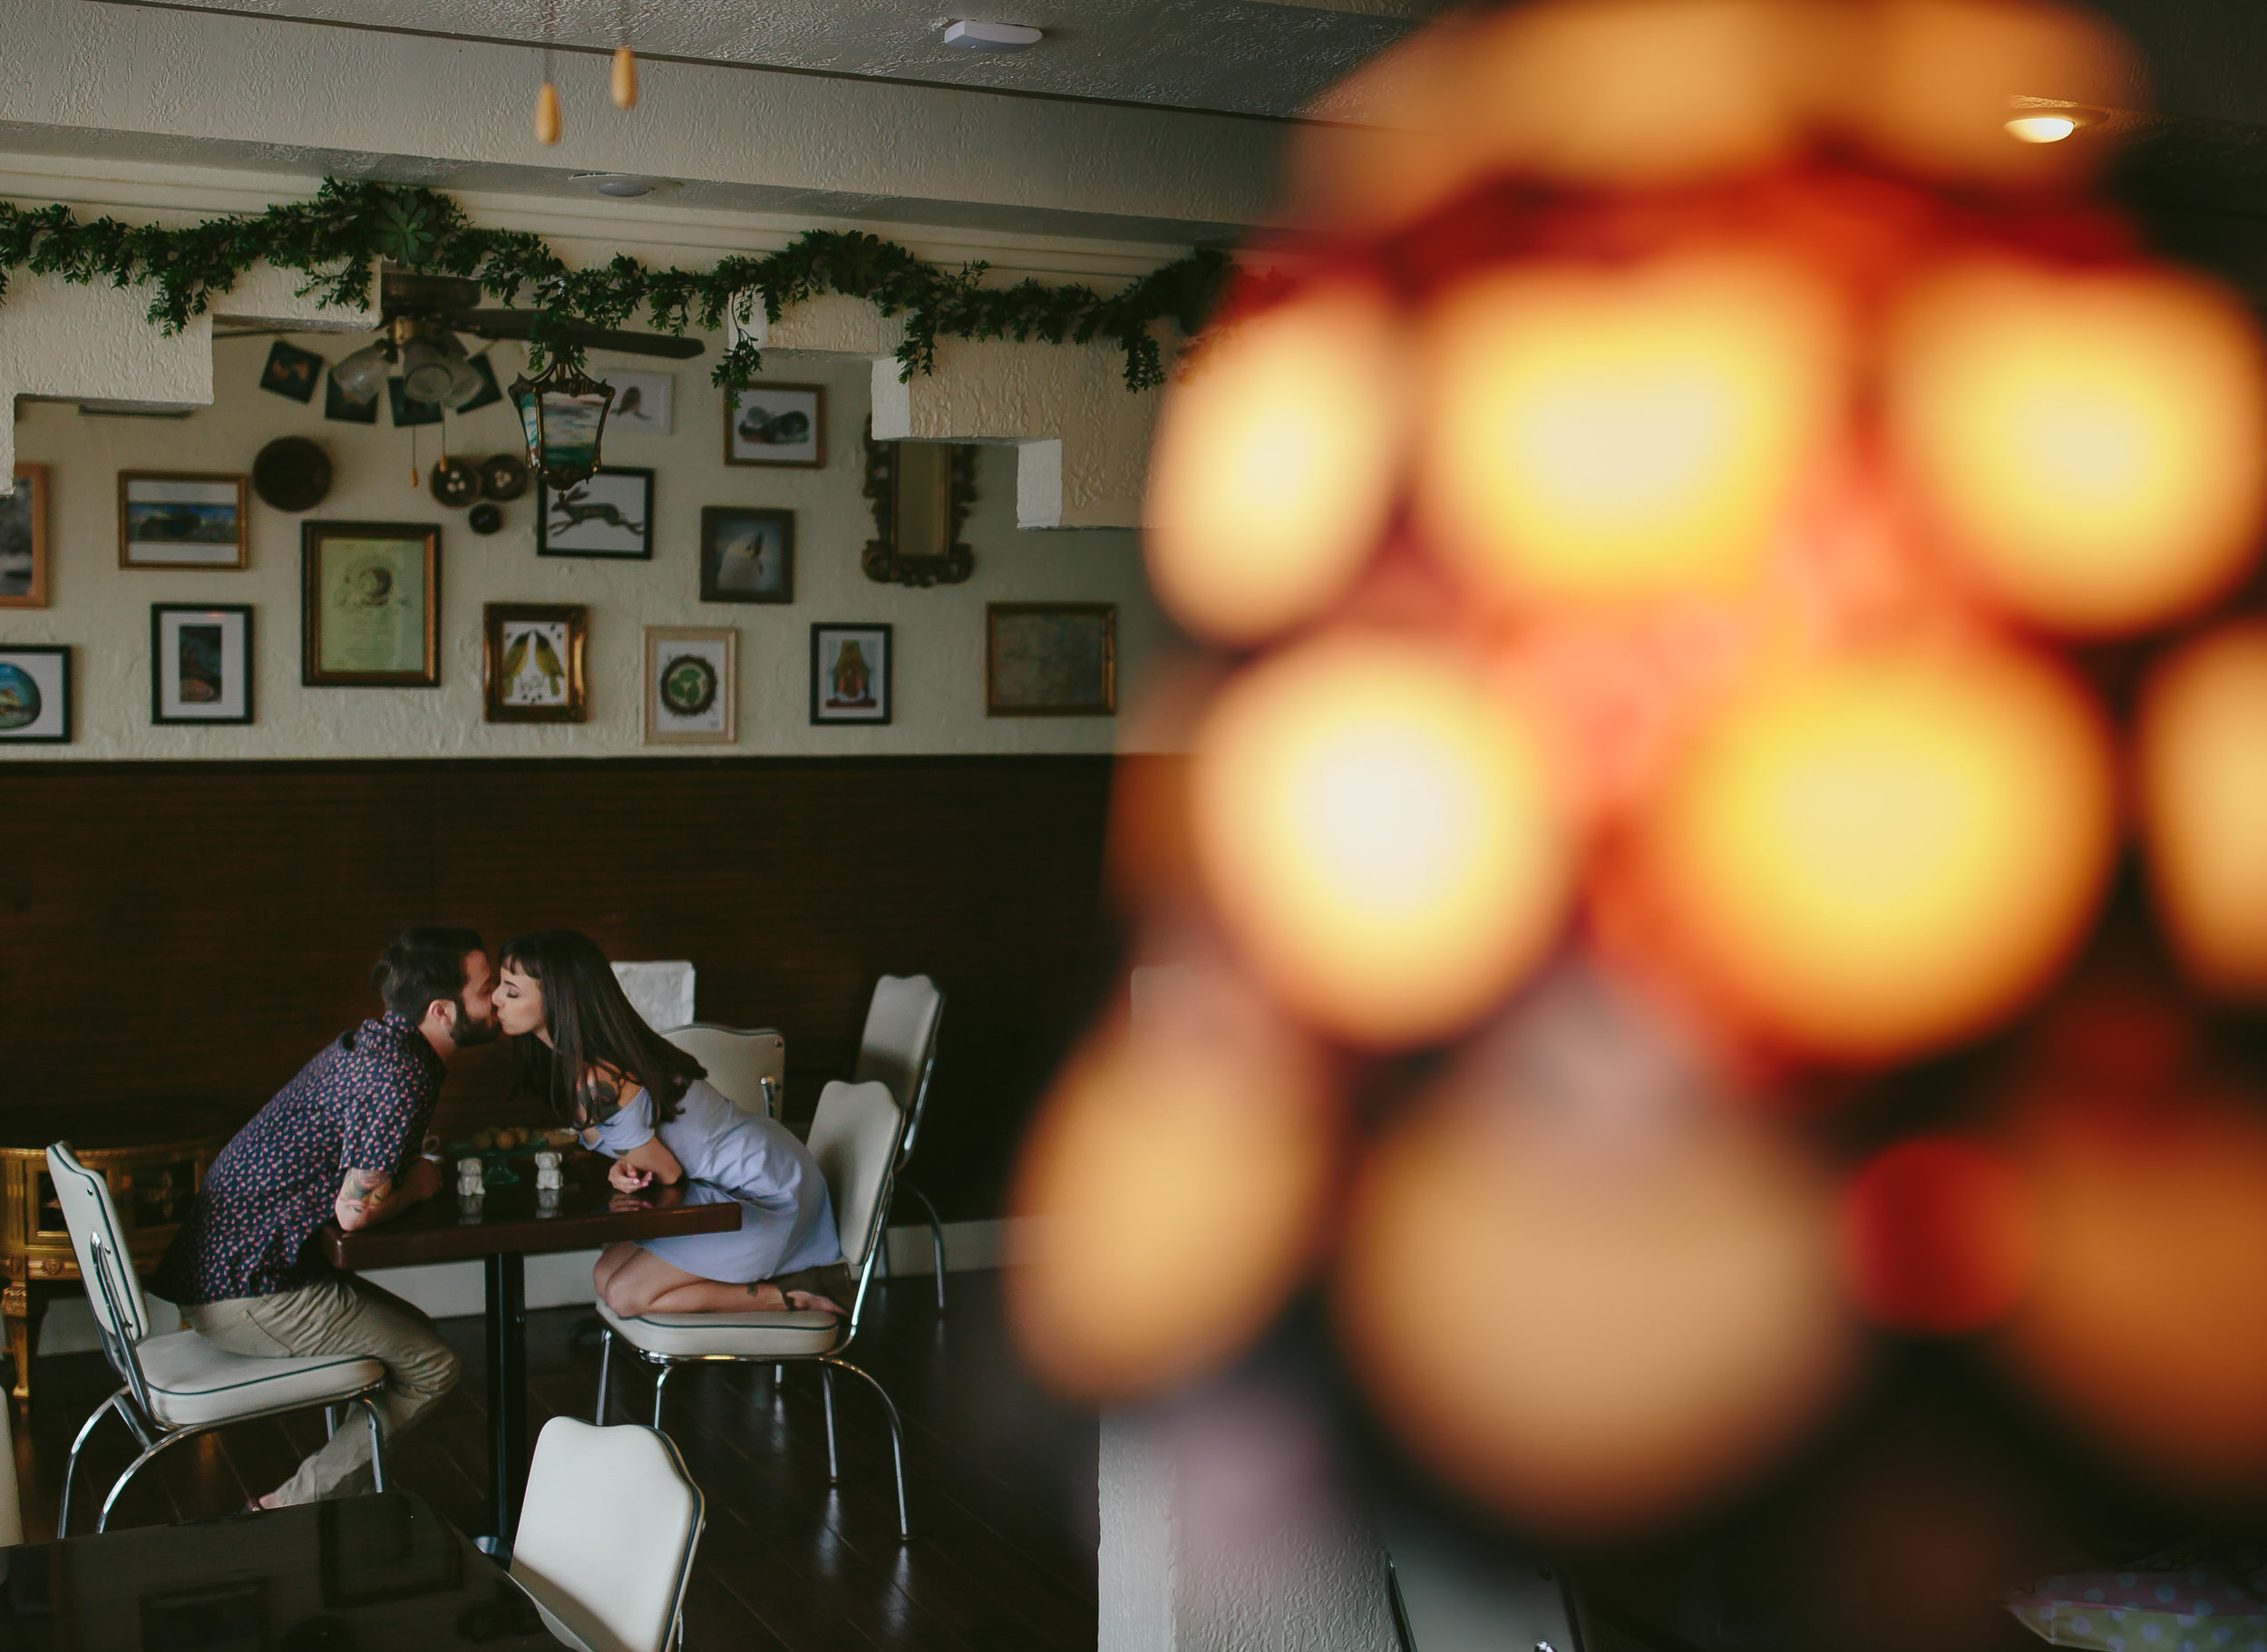 cutesy-engagement-session-kissing-cafe-tiny-house-photo-orlando.jpg